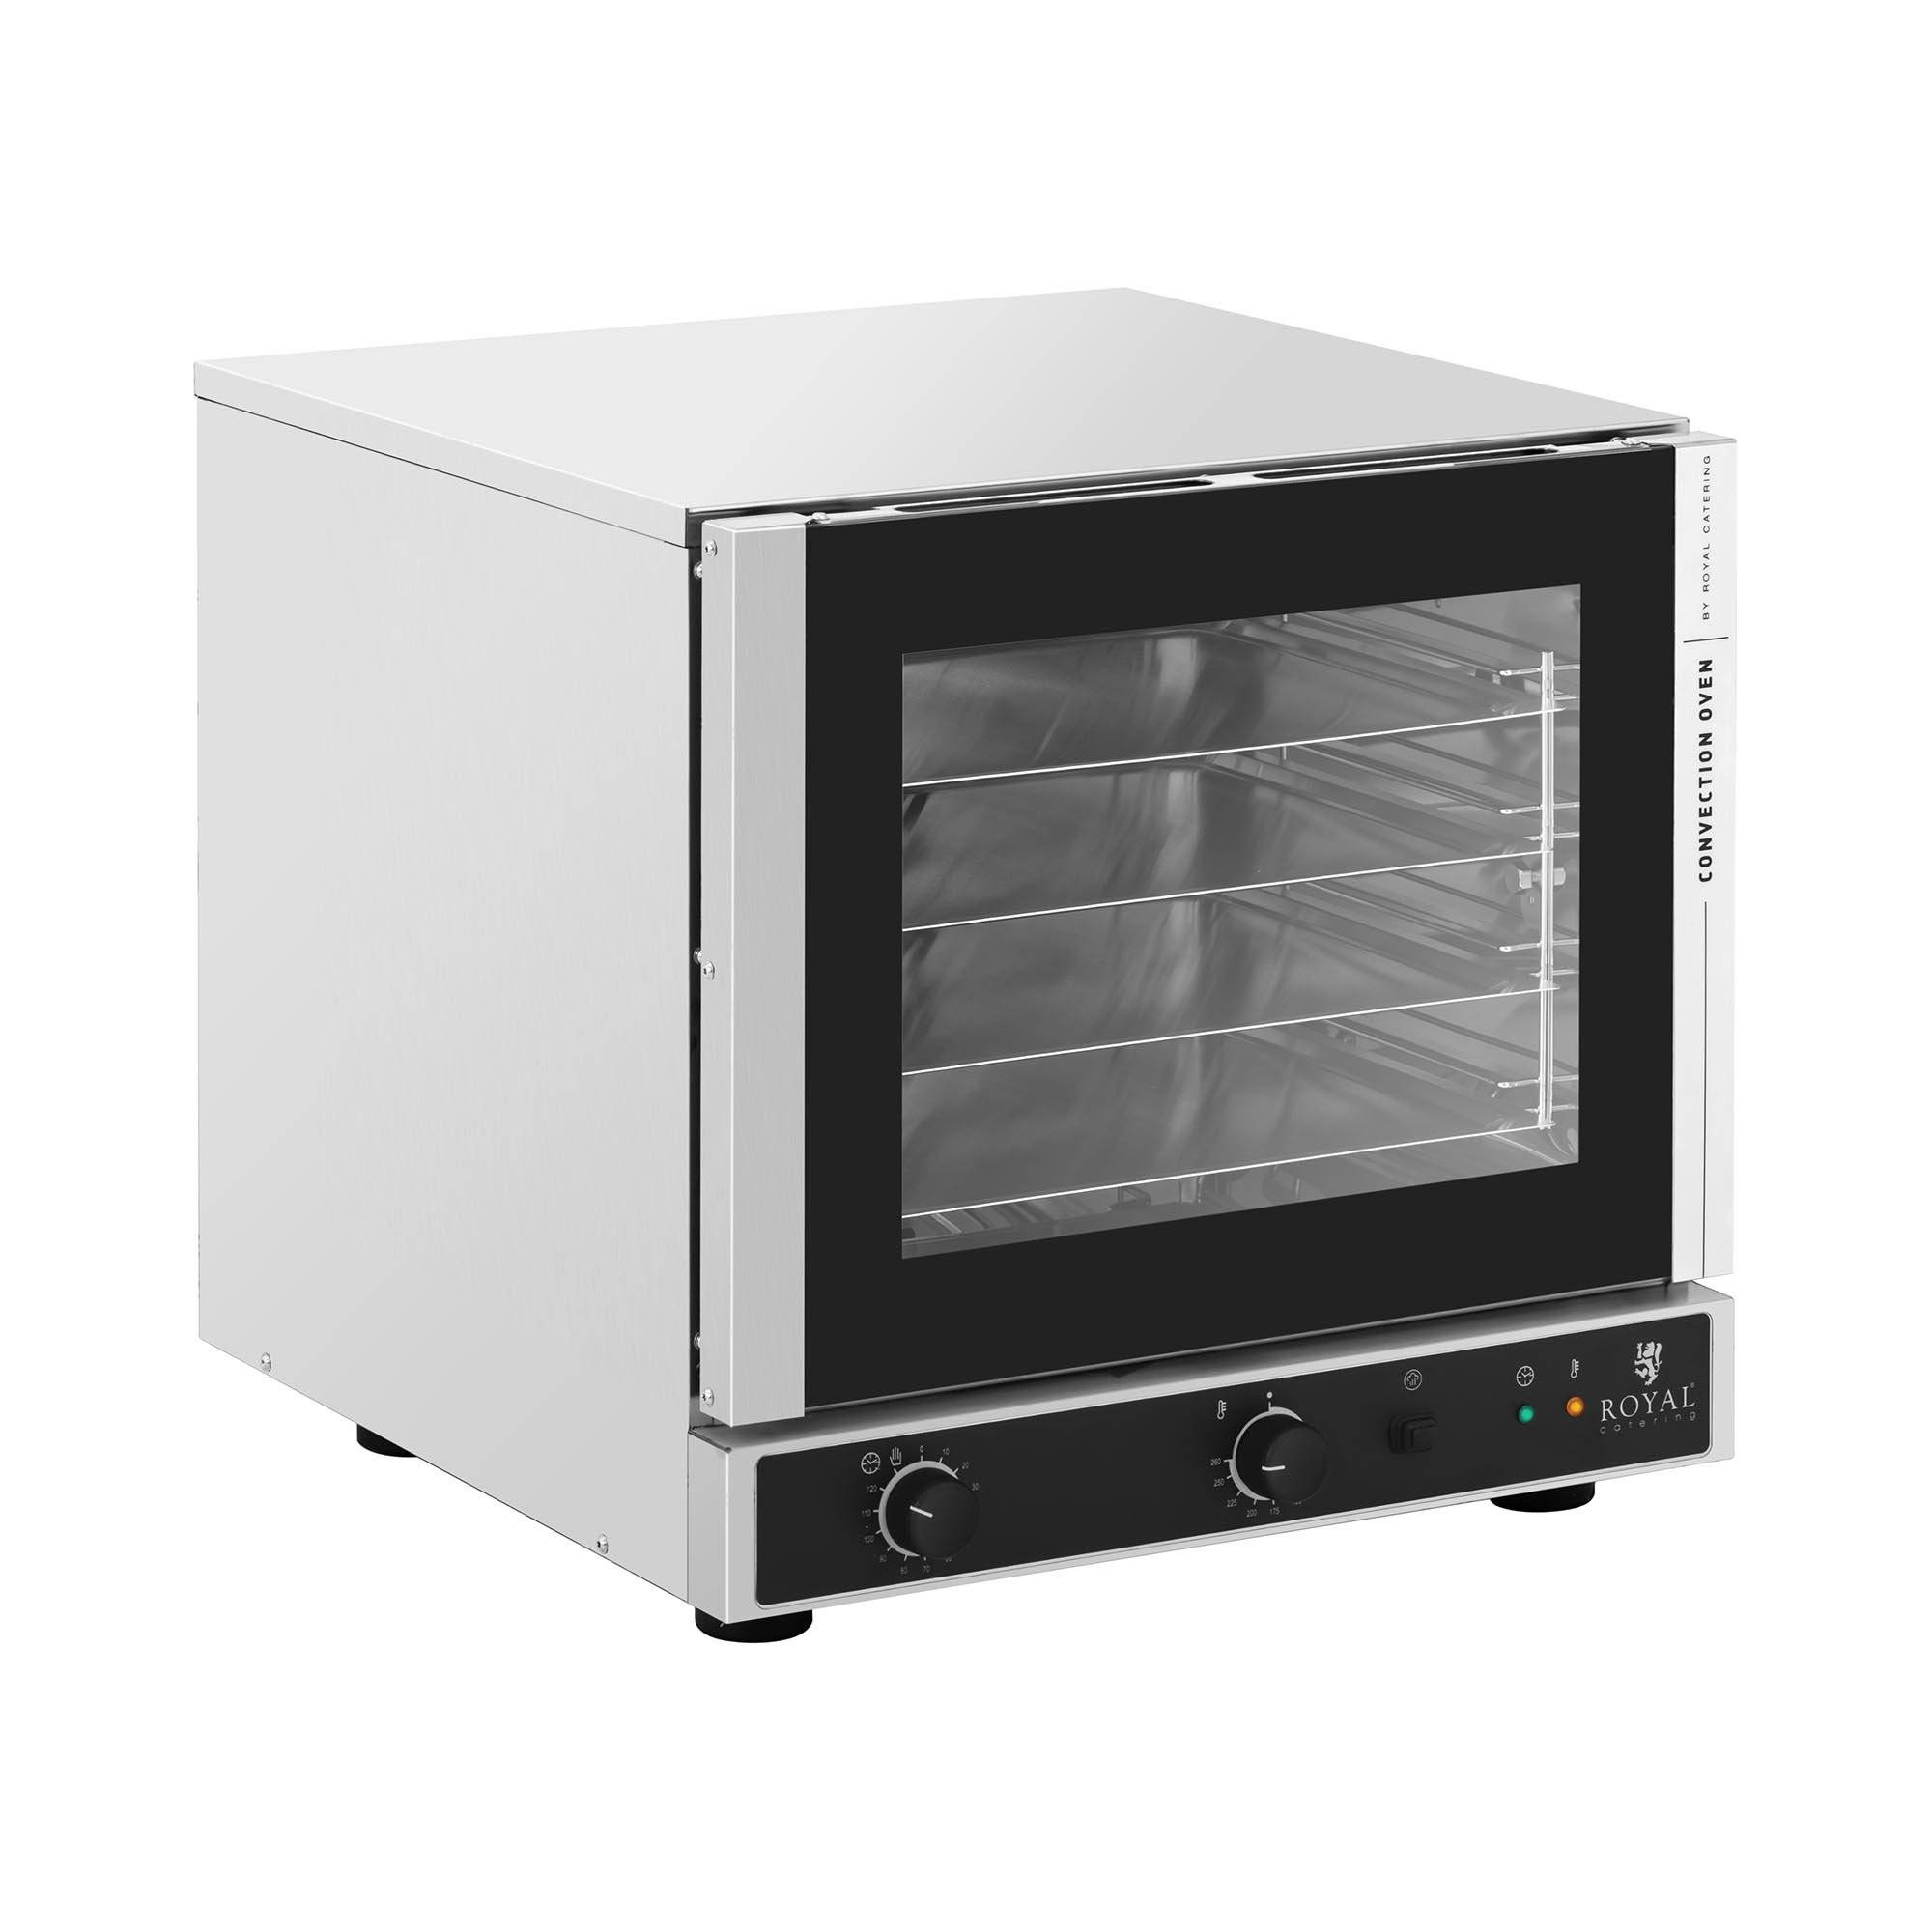 Royal Catering Convection Oven - 2,800 W - steam function - incl. 4 baking sheets (429 x 345 mm) RC-429M